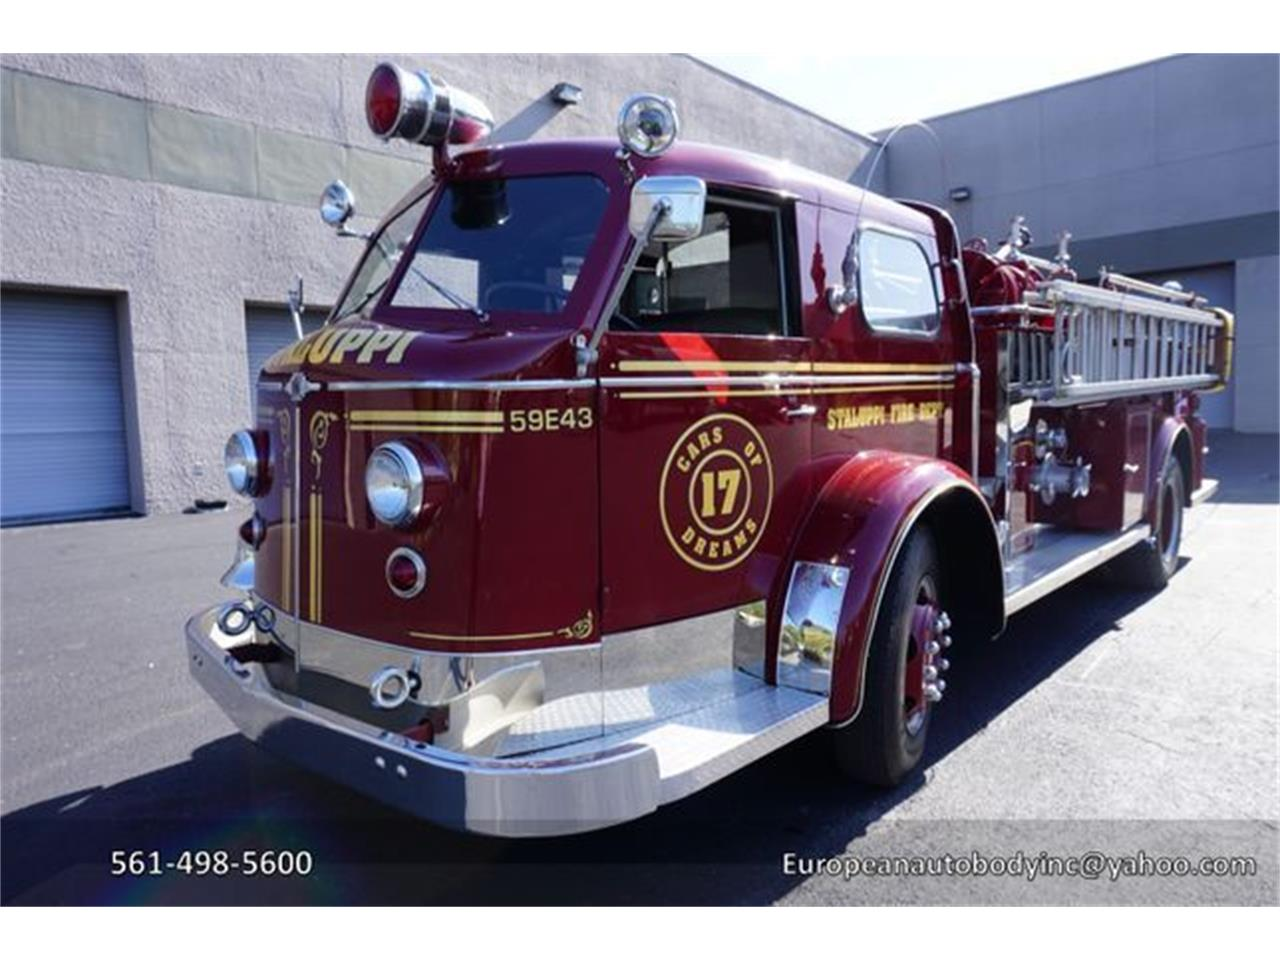 Large Picture of 1953 American LaFrance Fire Engine - O4GG